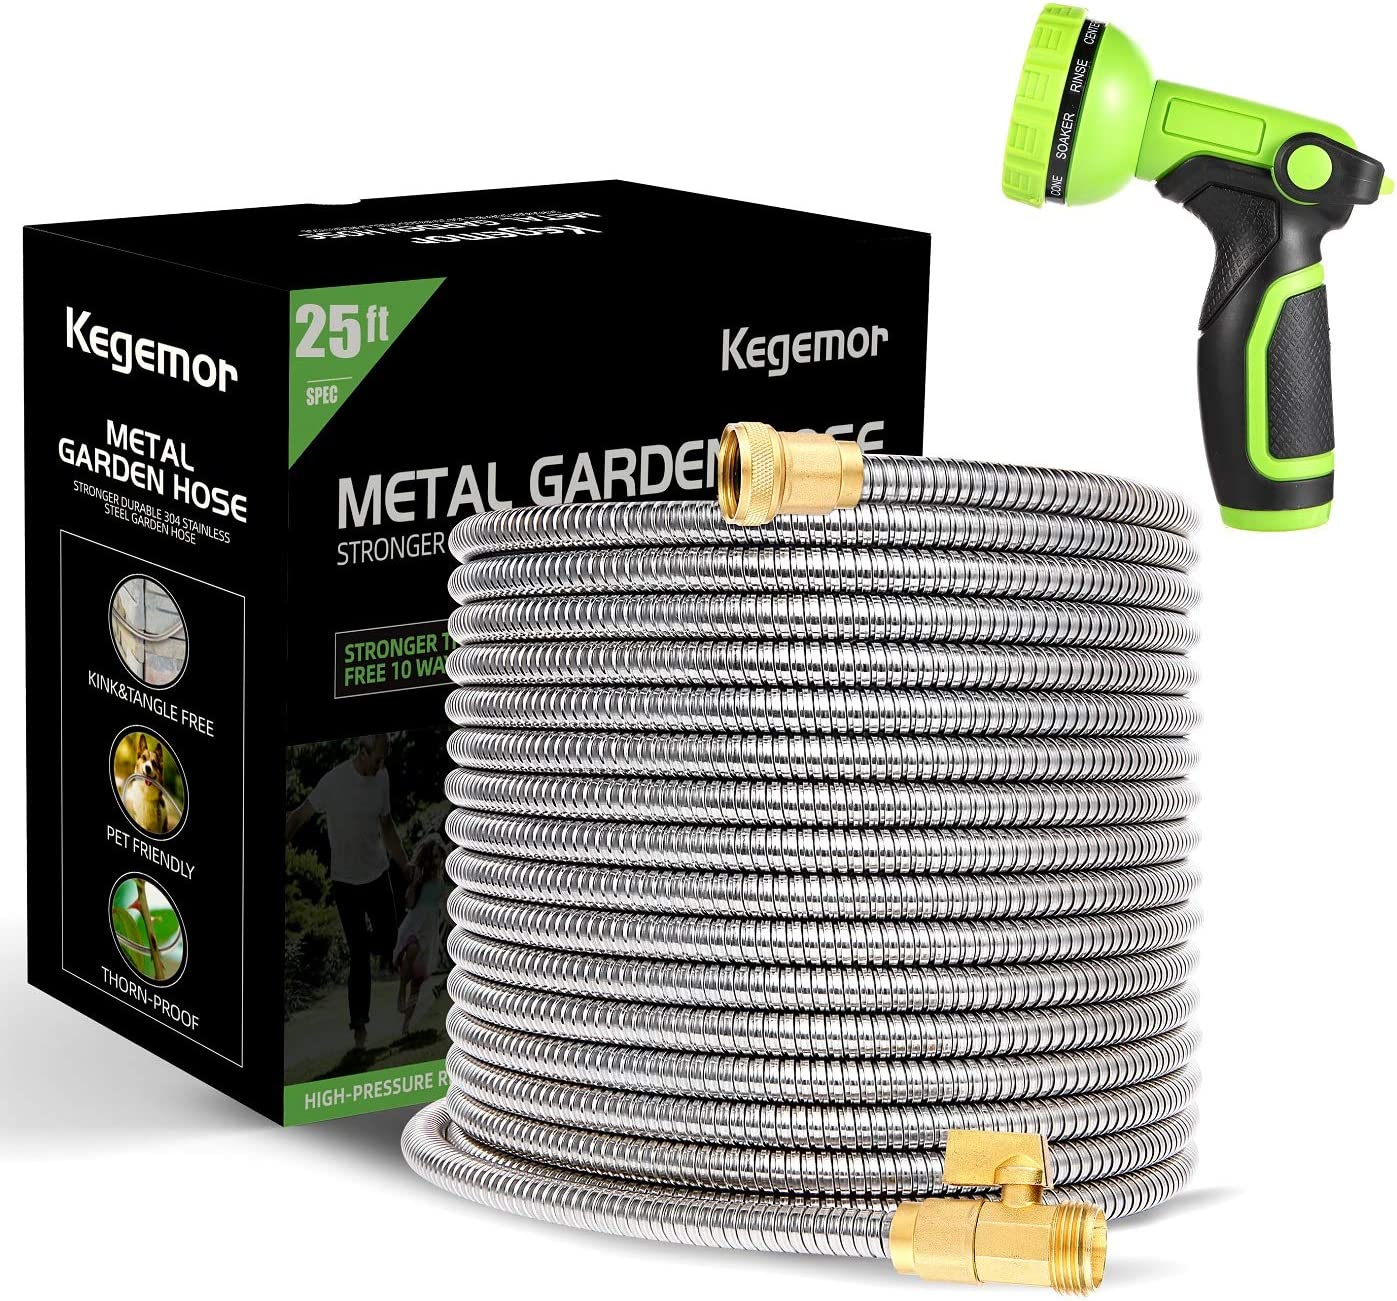 kegemor Garden Hose 25 ft-Metal Water Hose -Flexible Lightweight Outdoor Yard Strong Durable Heavy Duty 304 Stainless Steel Hose Pipe with 10-Way Nozzle, Solid 3/4